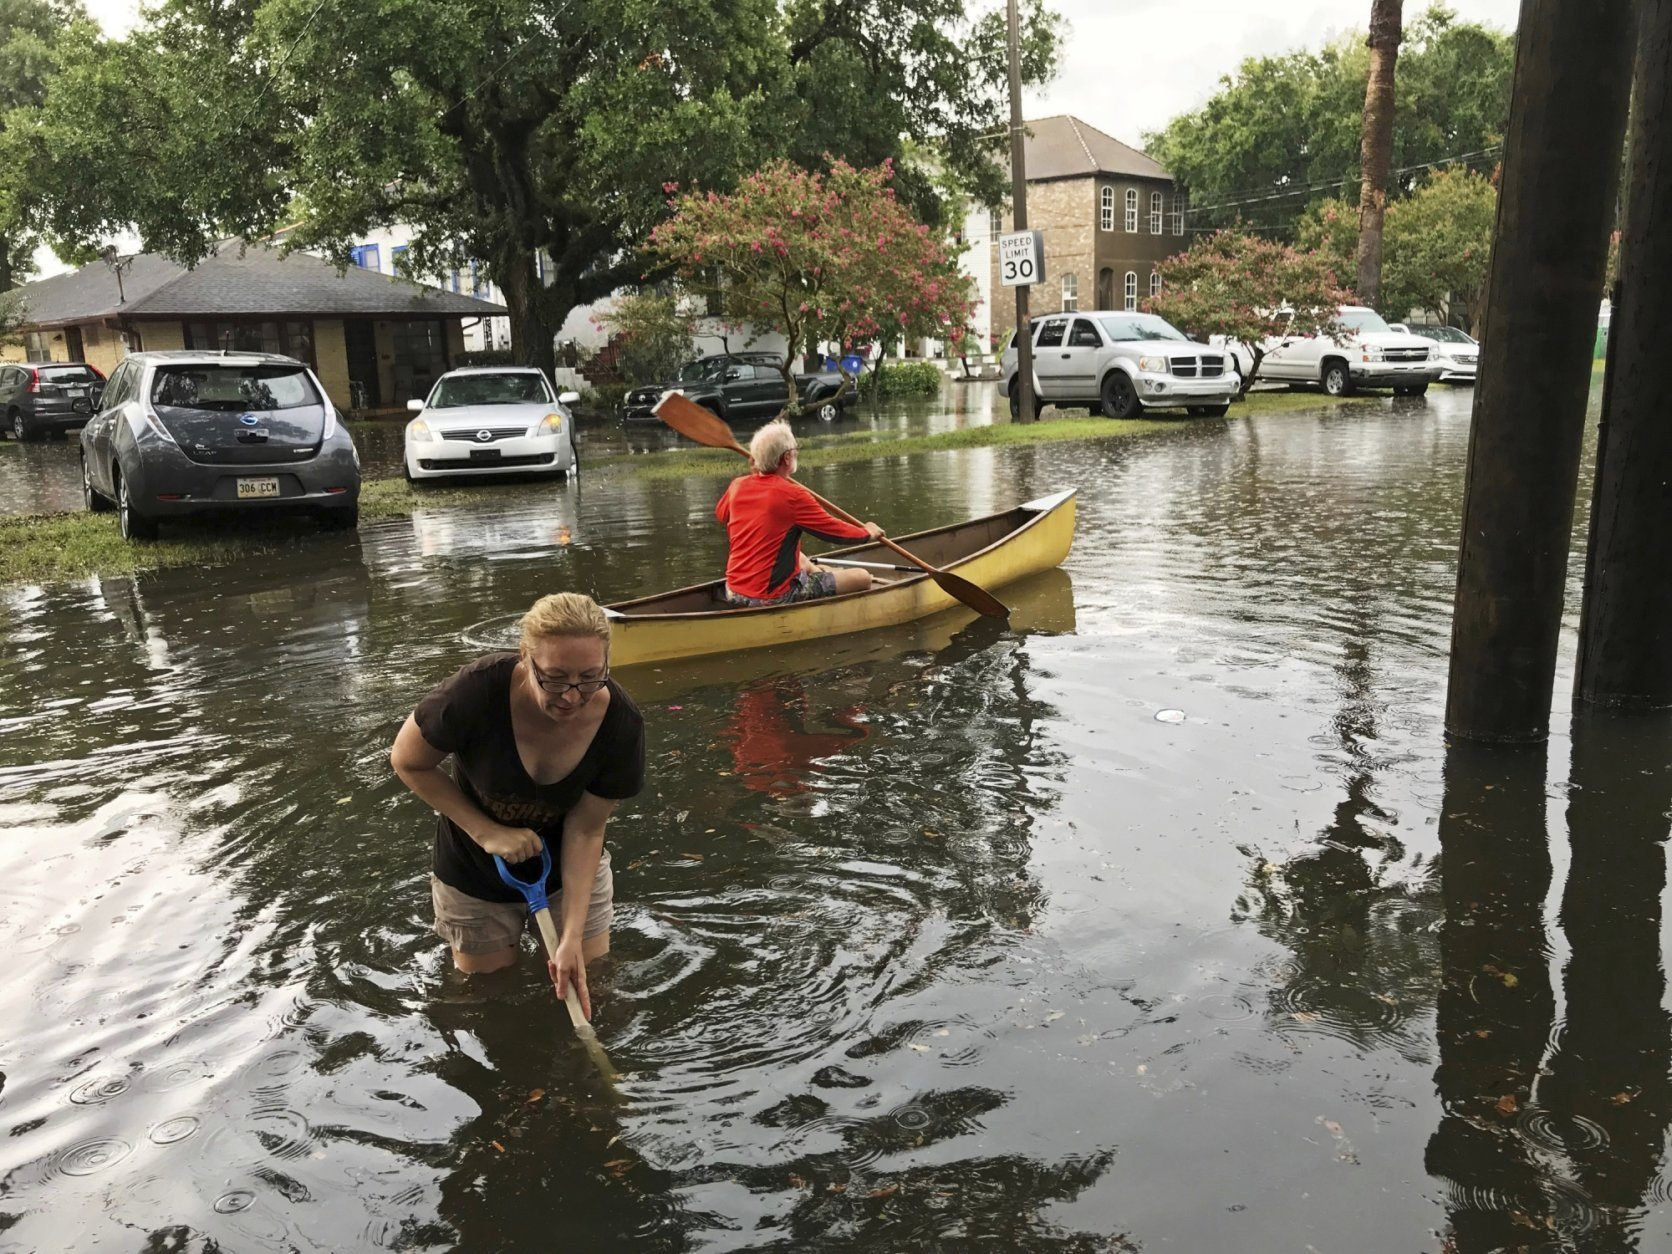 People cope with the aftermath of severe weather in the Broadmoor neighborhood in New Orleans, Wednesday, July 10, 2019.  (Nick Reimann/The Advocate via AP)